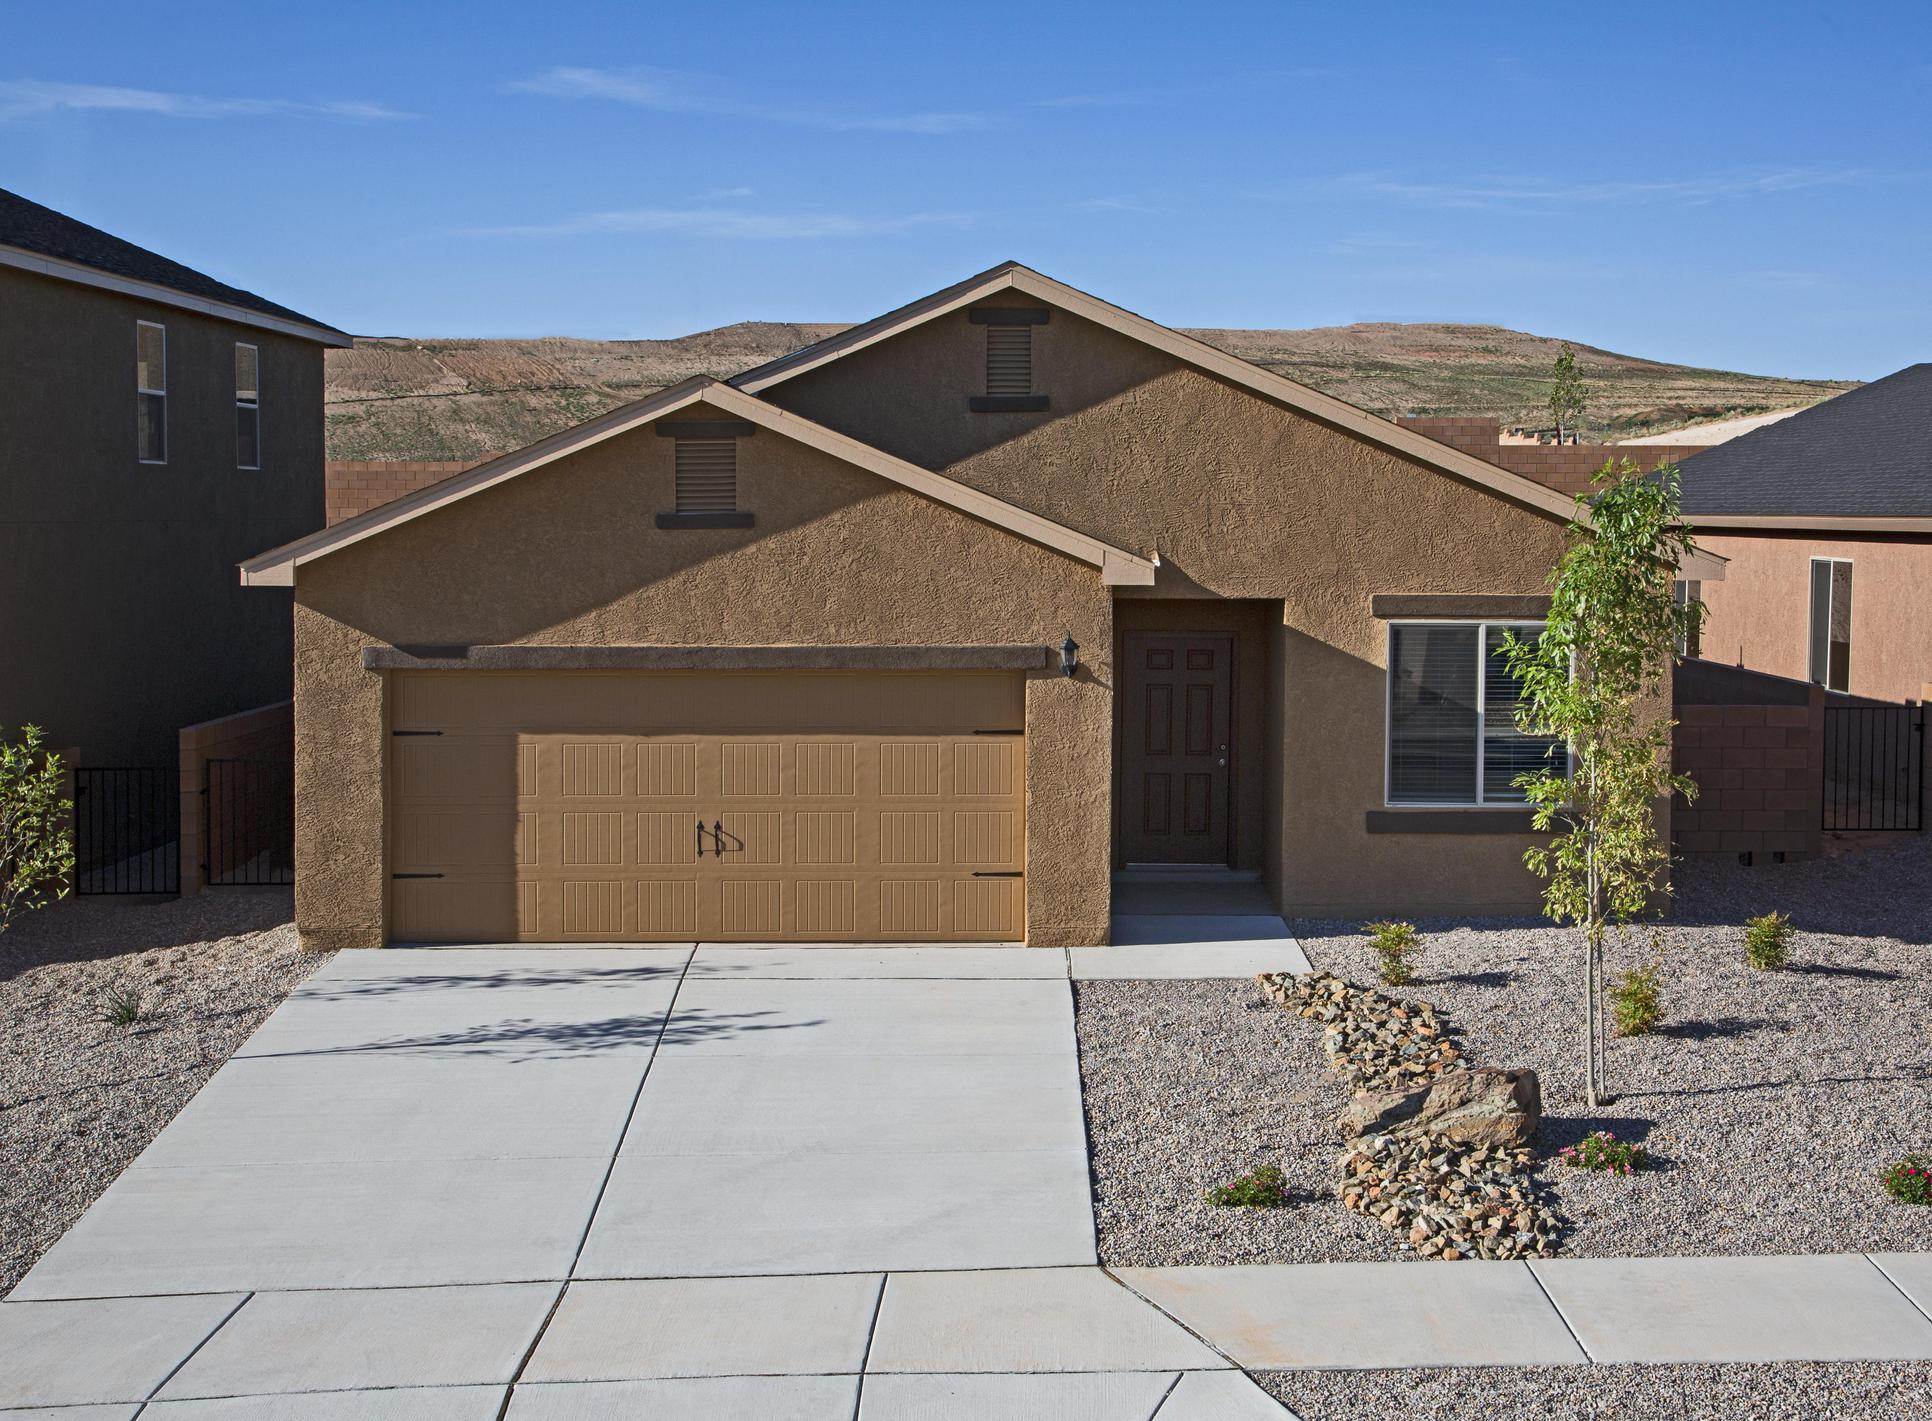 The Ajo by LGI Homes:3-Bedroom Home with Great Curb Appeal!